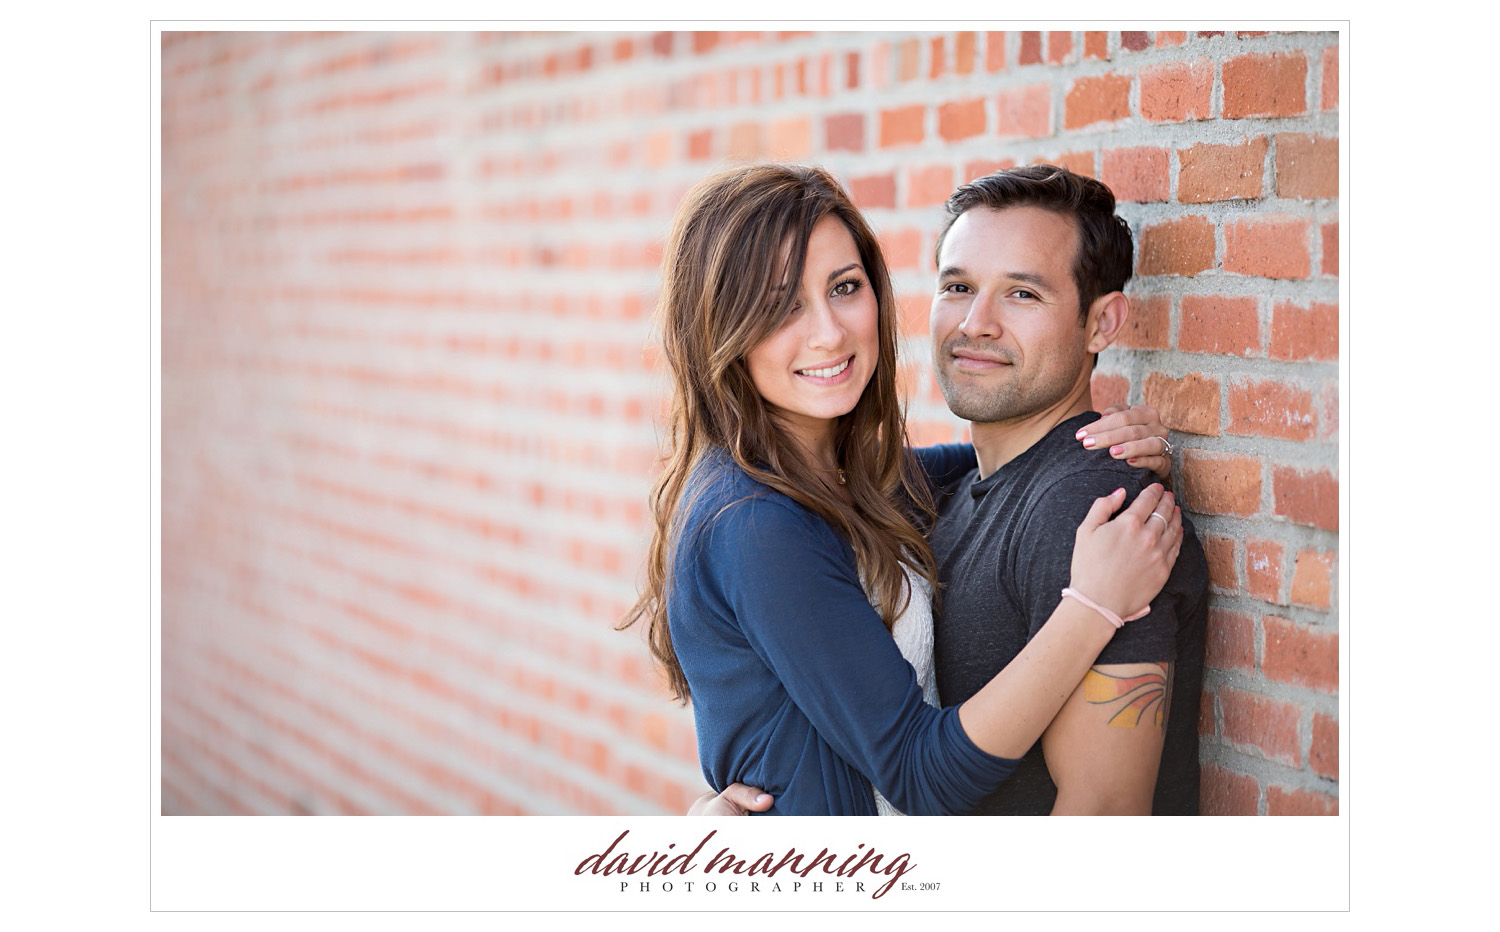 Encinitas-Engagement-Photos-San-Diego-David-Manning_0002.jpg